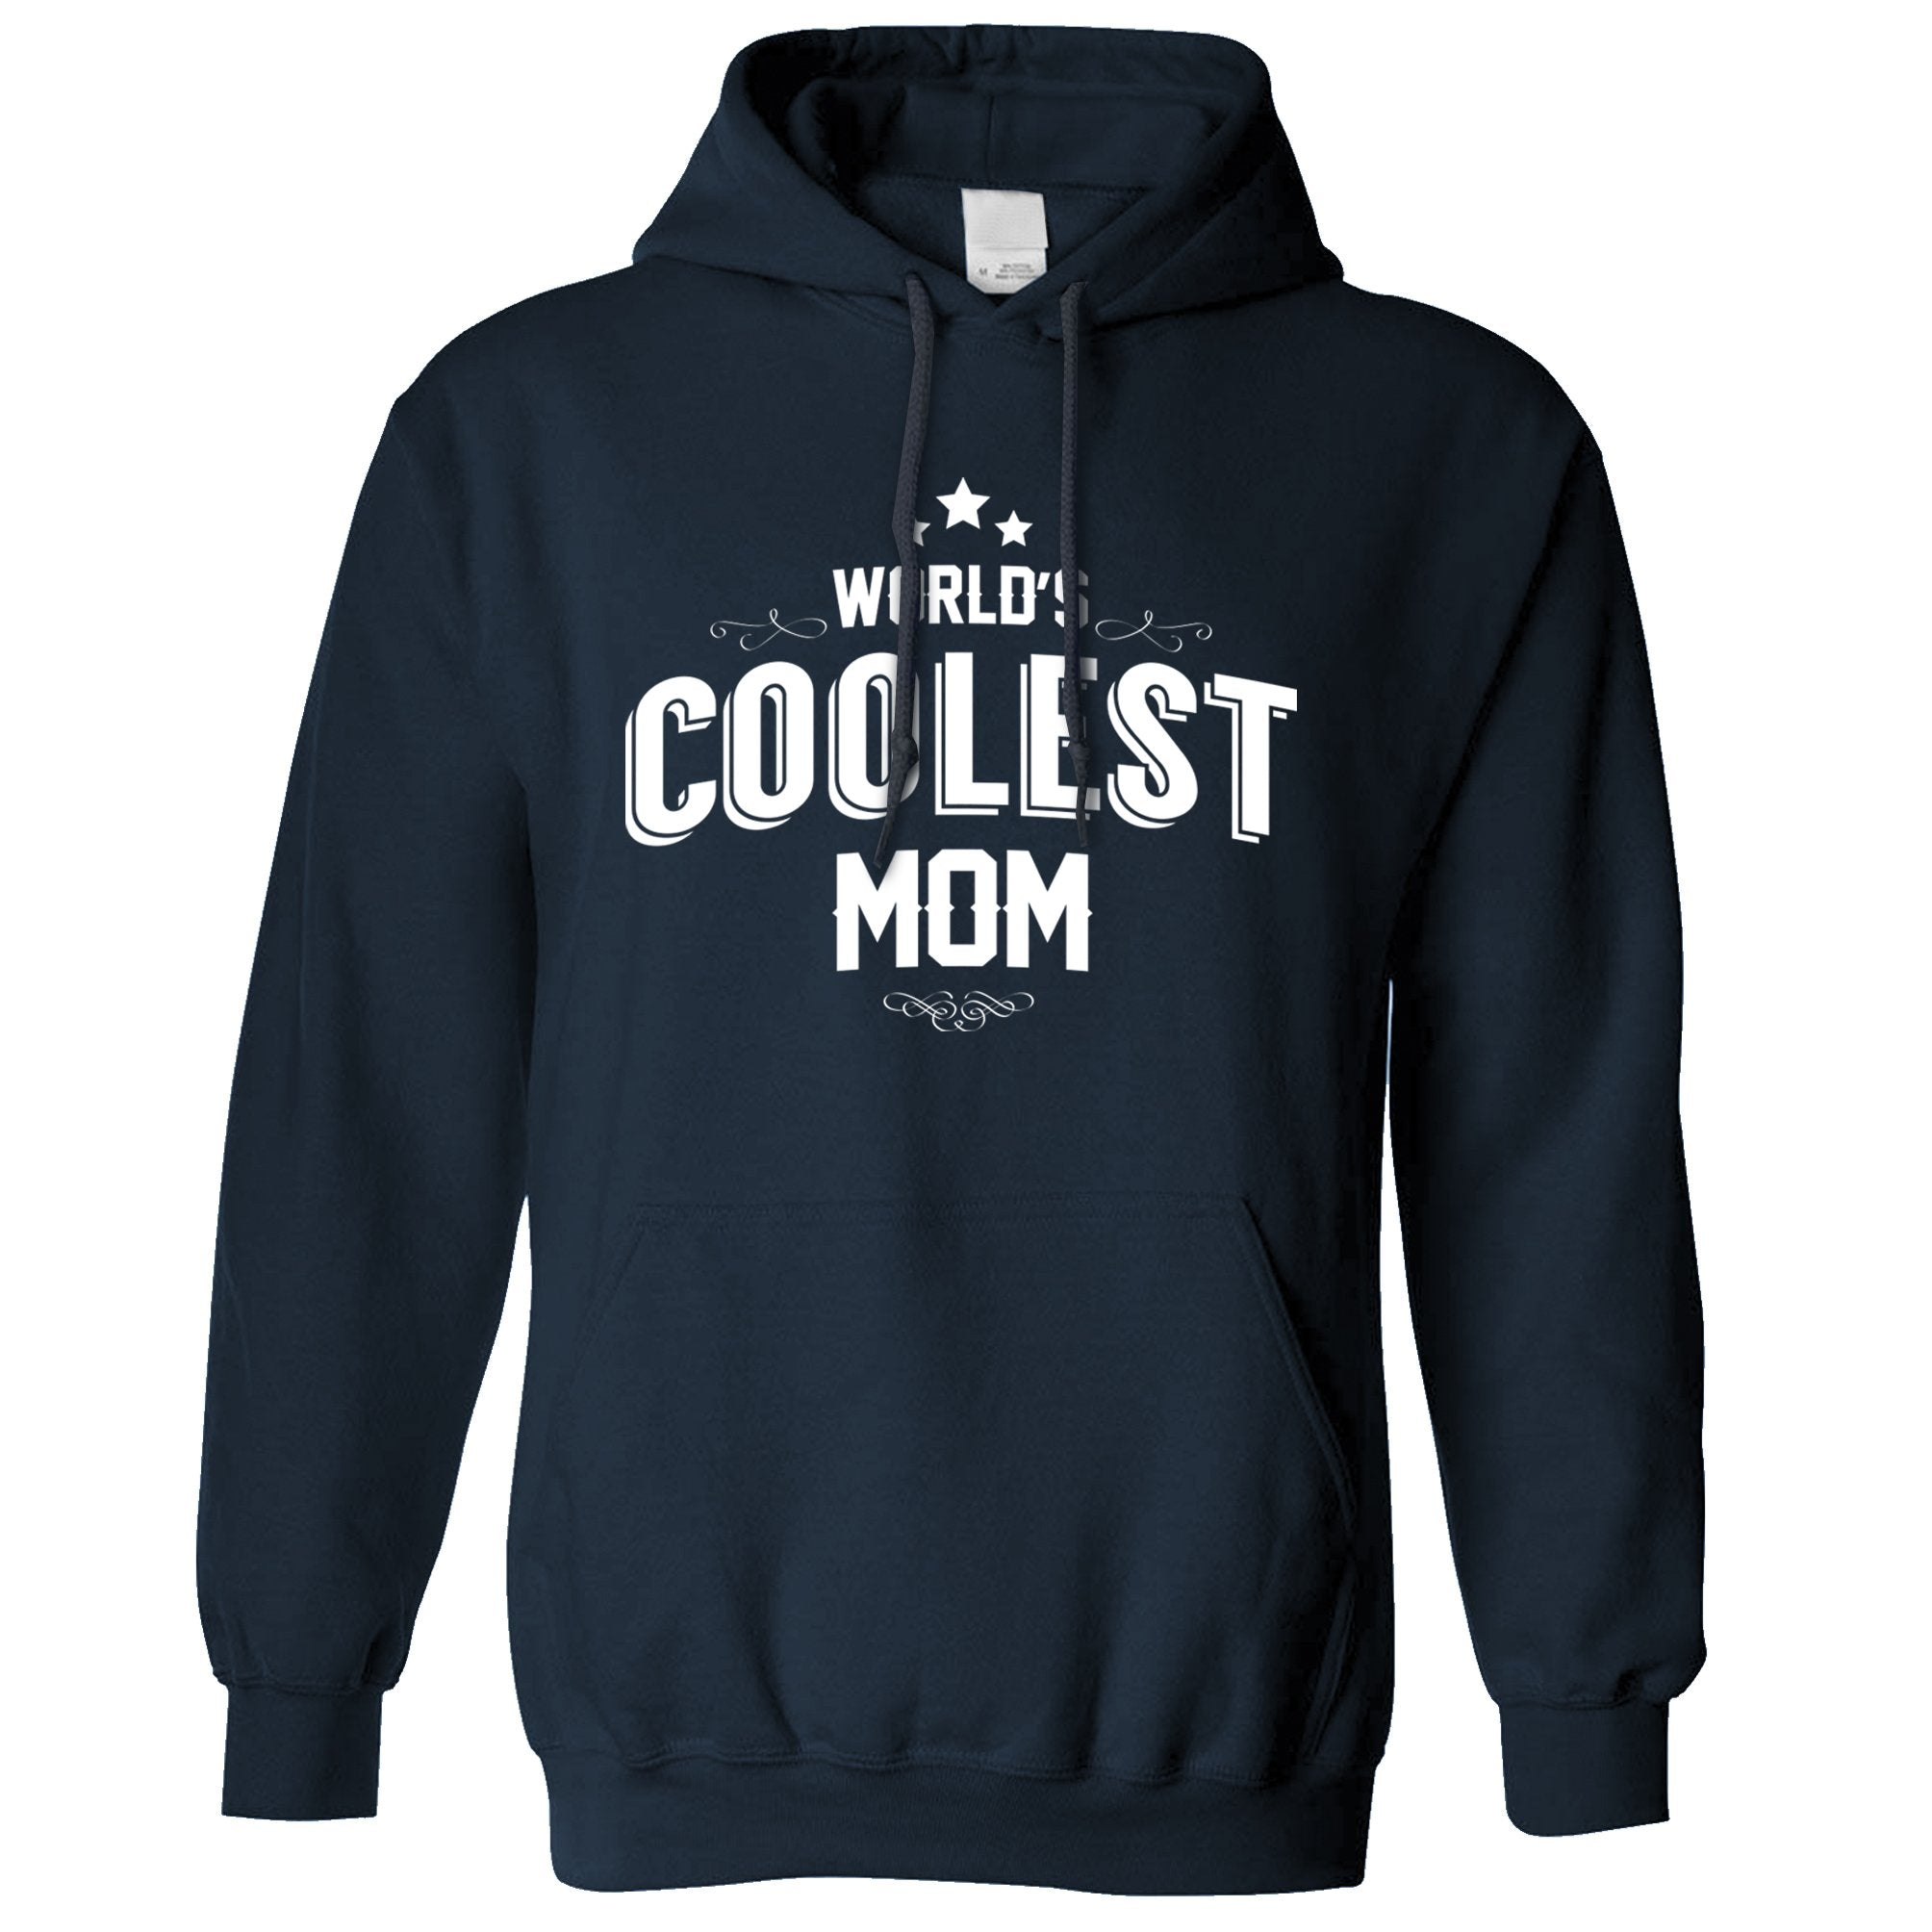 Novelty Hoodie Worlds Coolest Mom Slogan Hooded Jumper